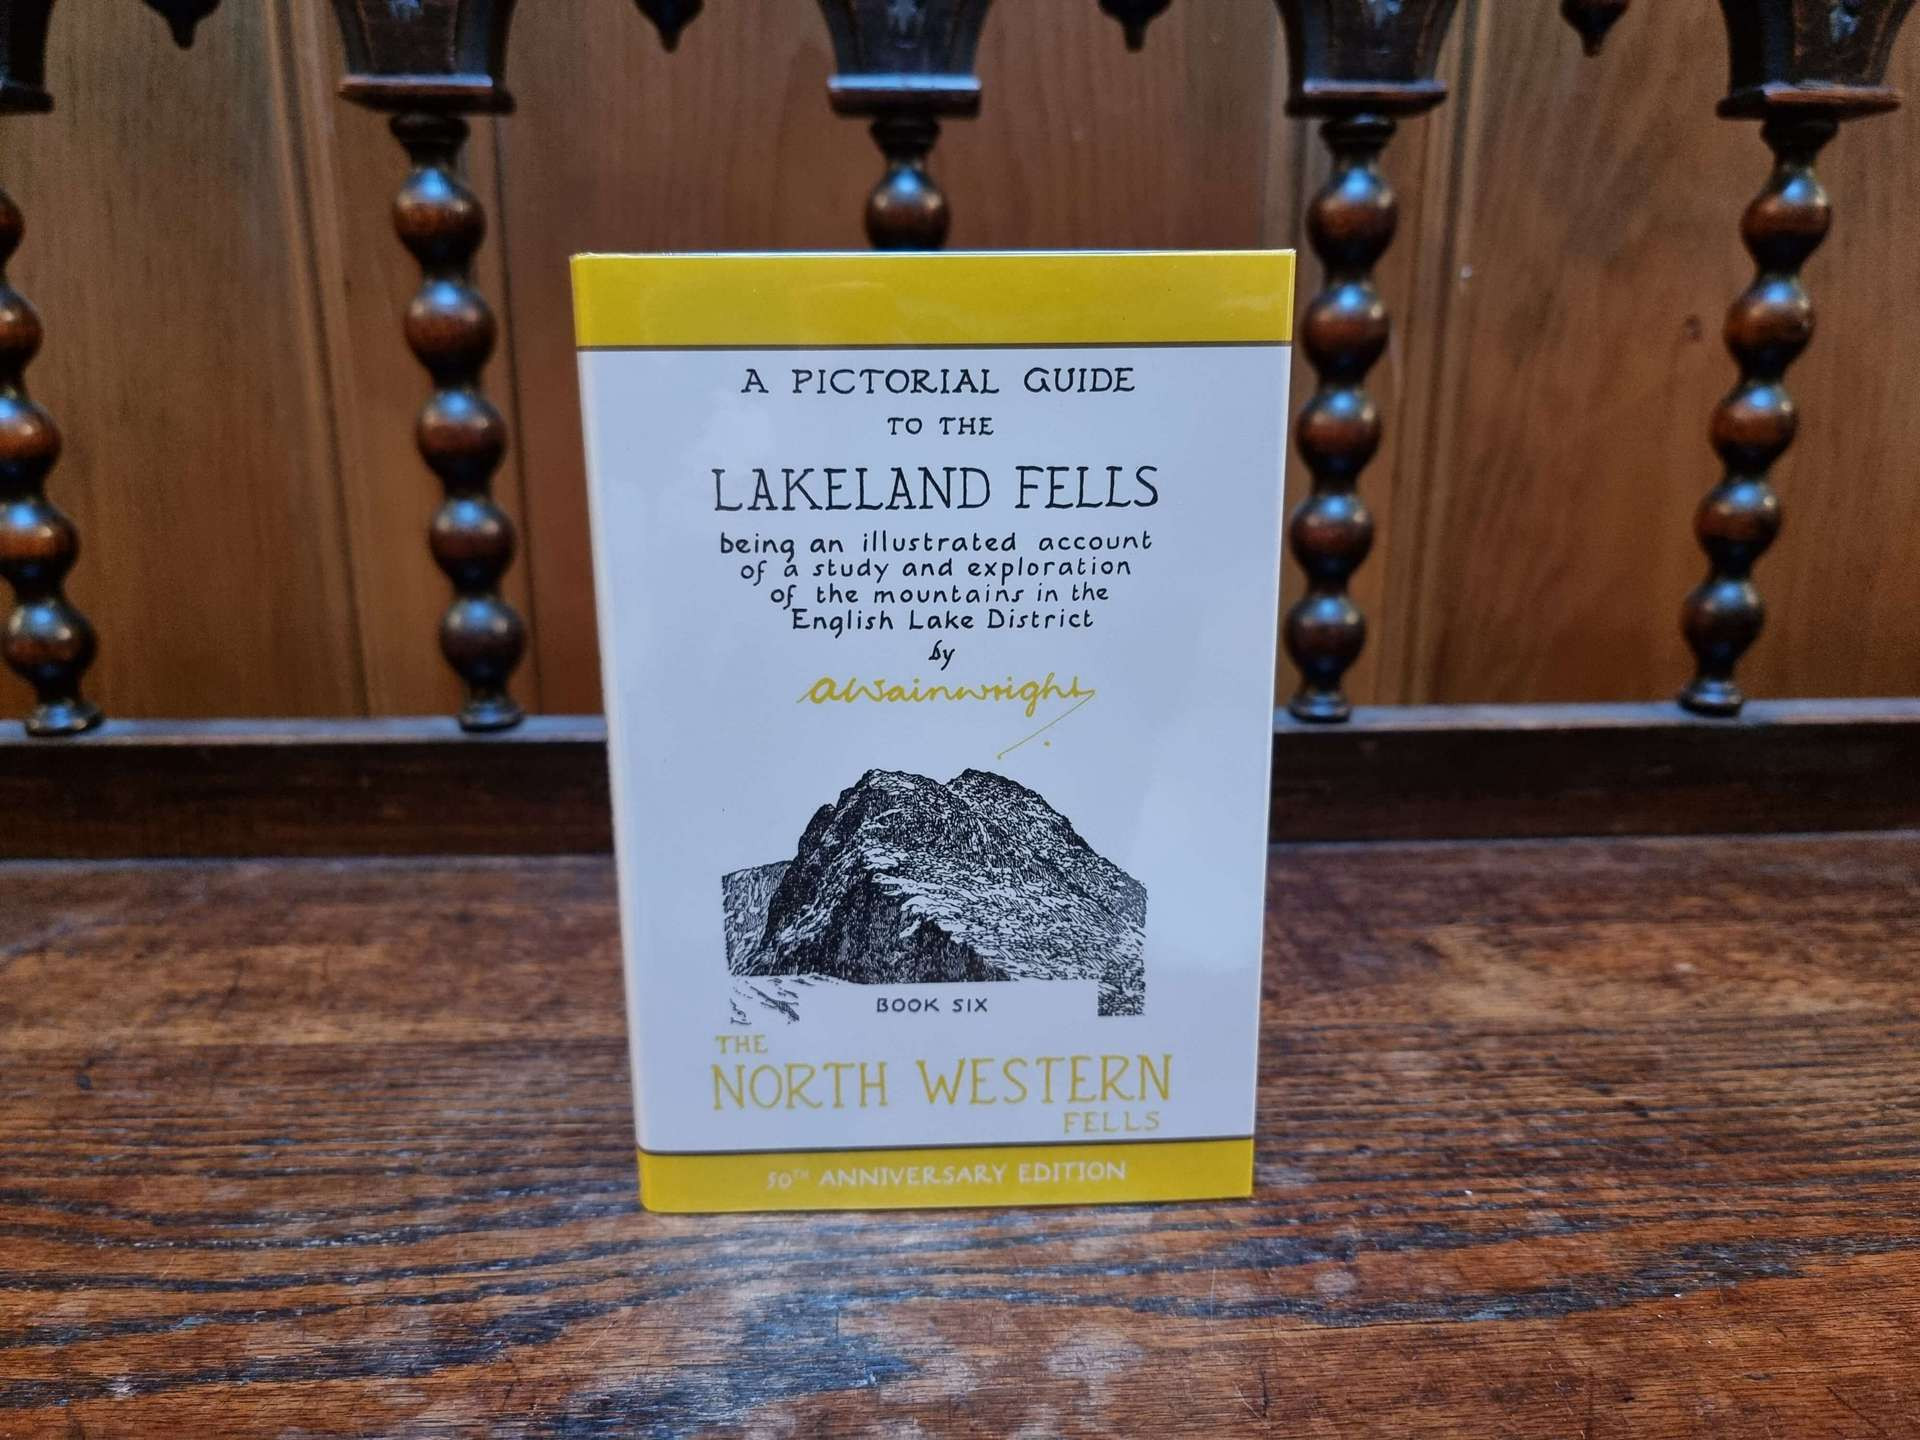 The North Western Fells – 50th Anniversary Edition. Printed in Kendal